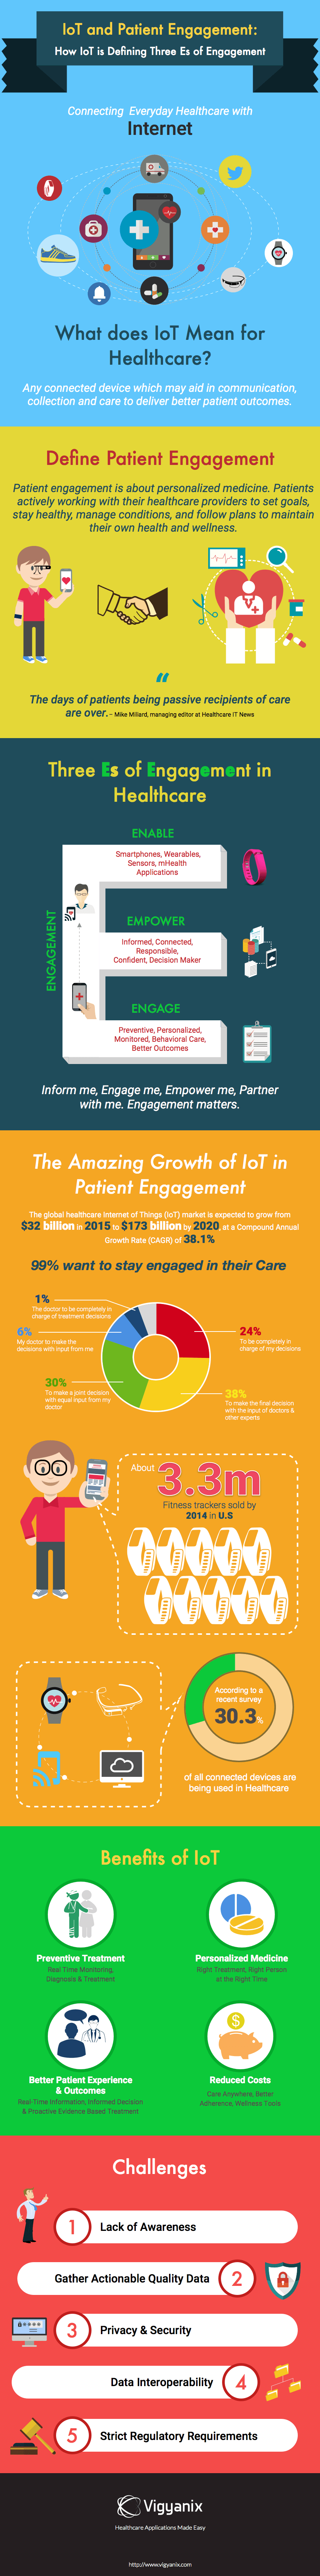 how to leverage the internet of things for patient engagement